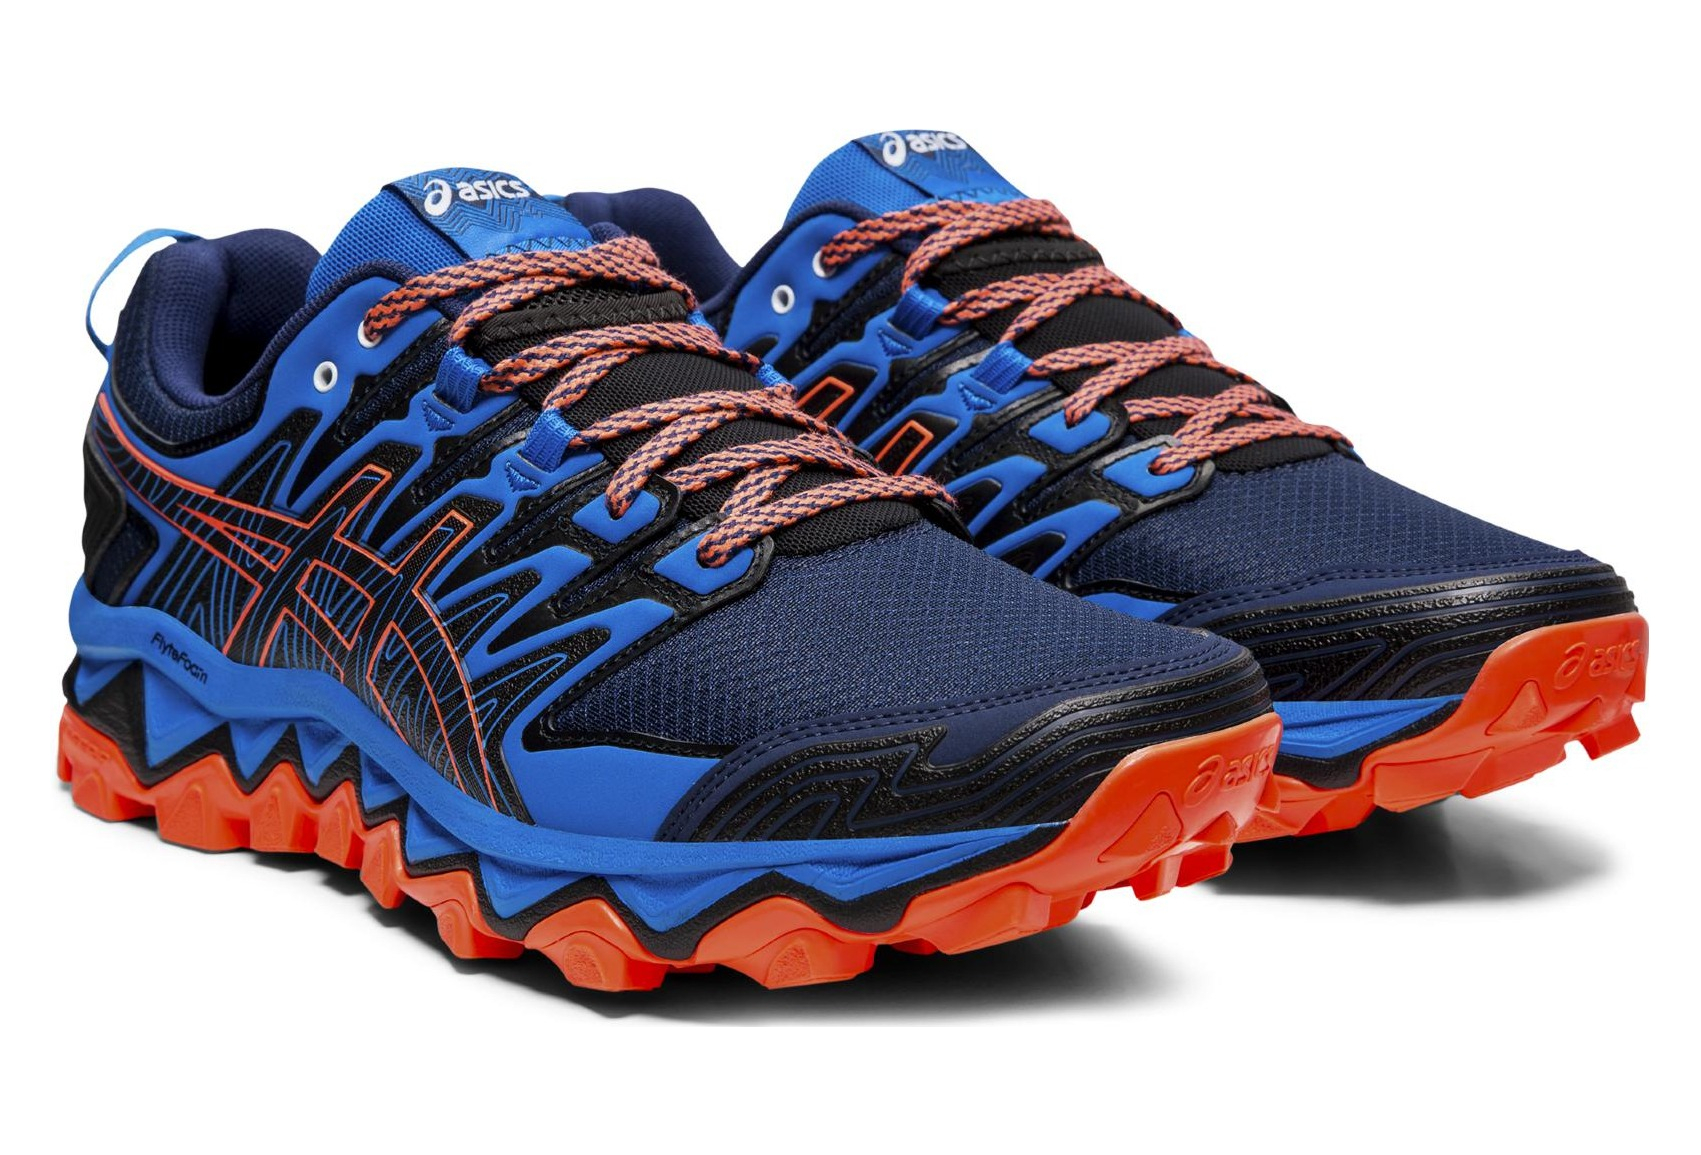 asics bleu orange noir